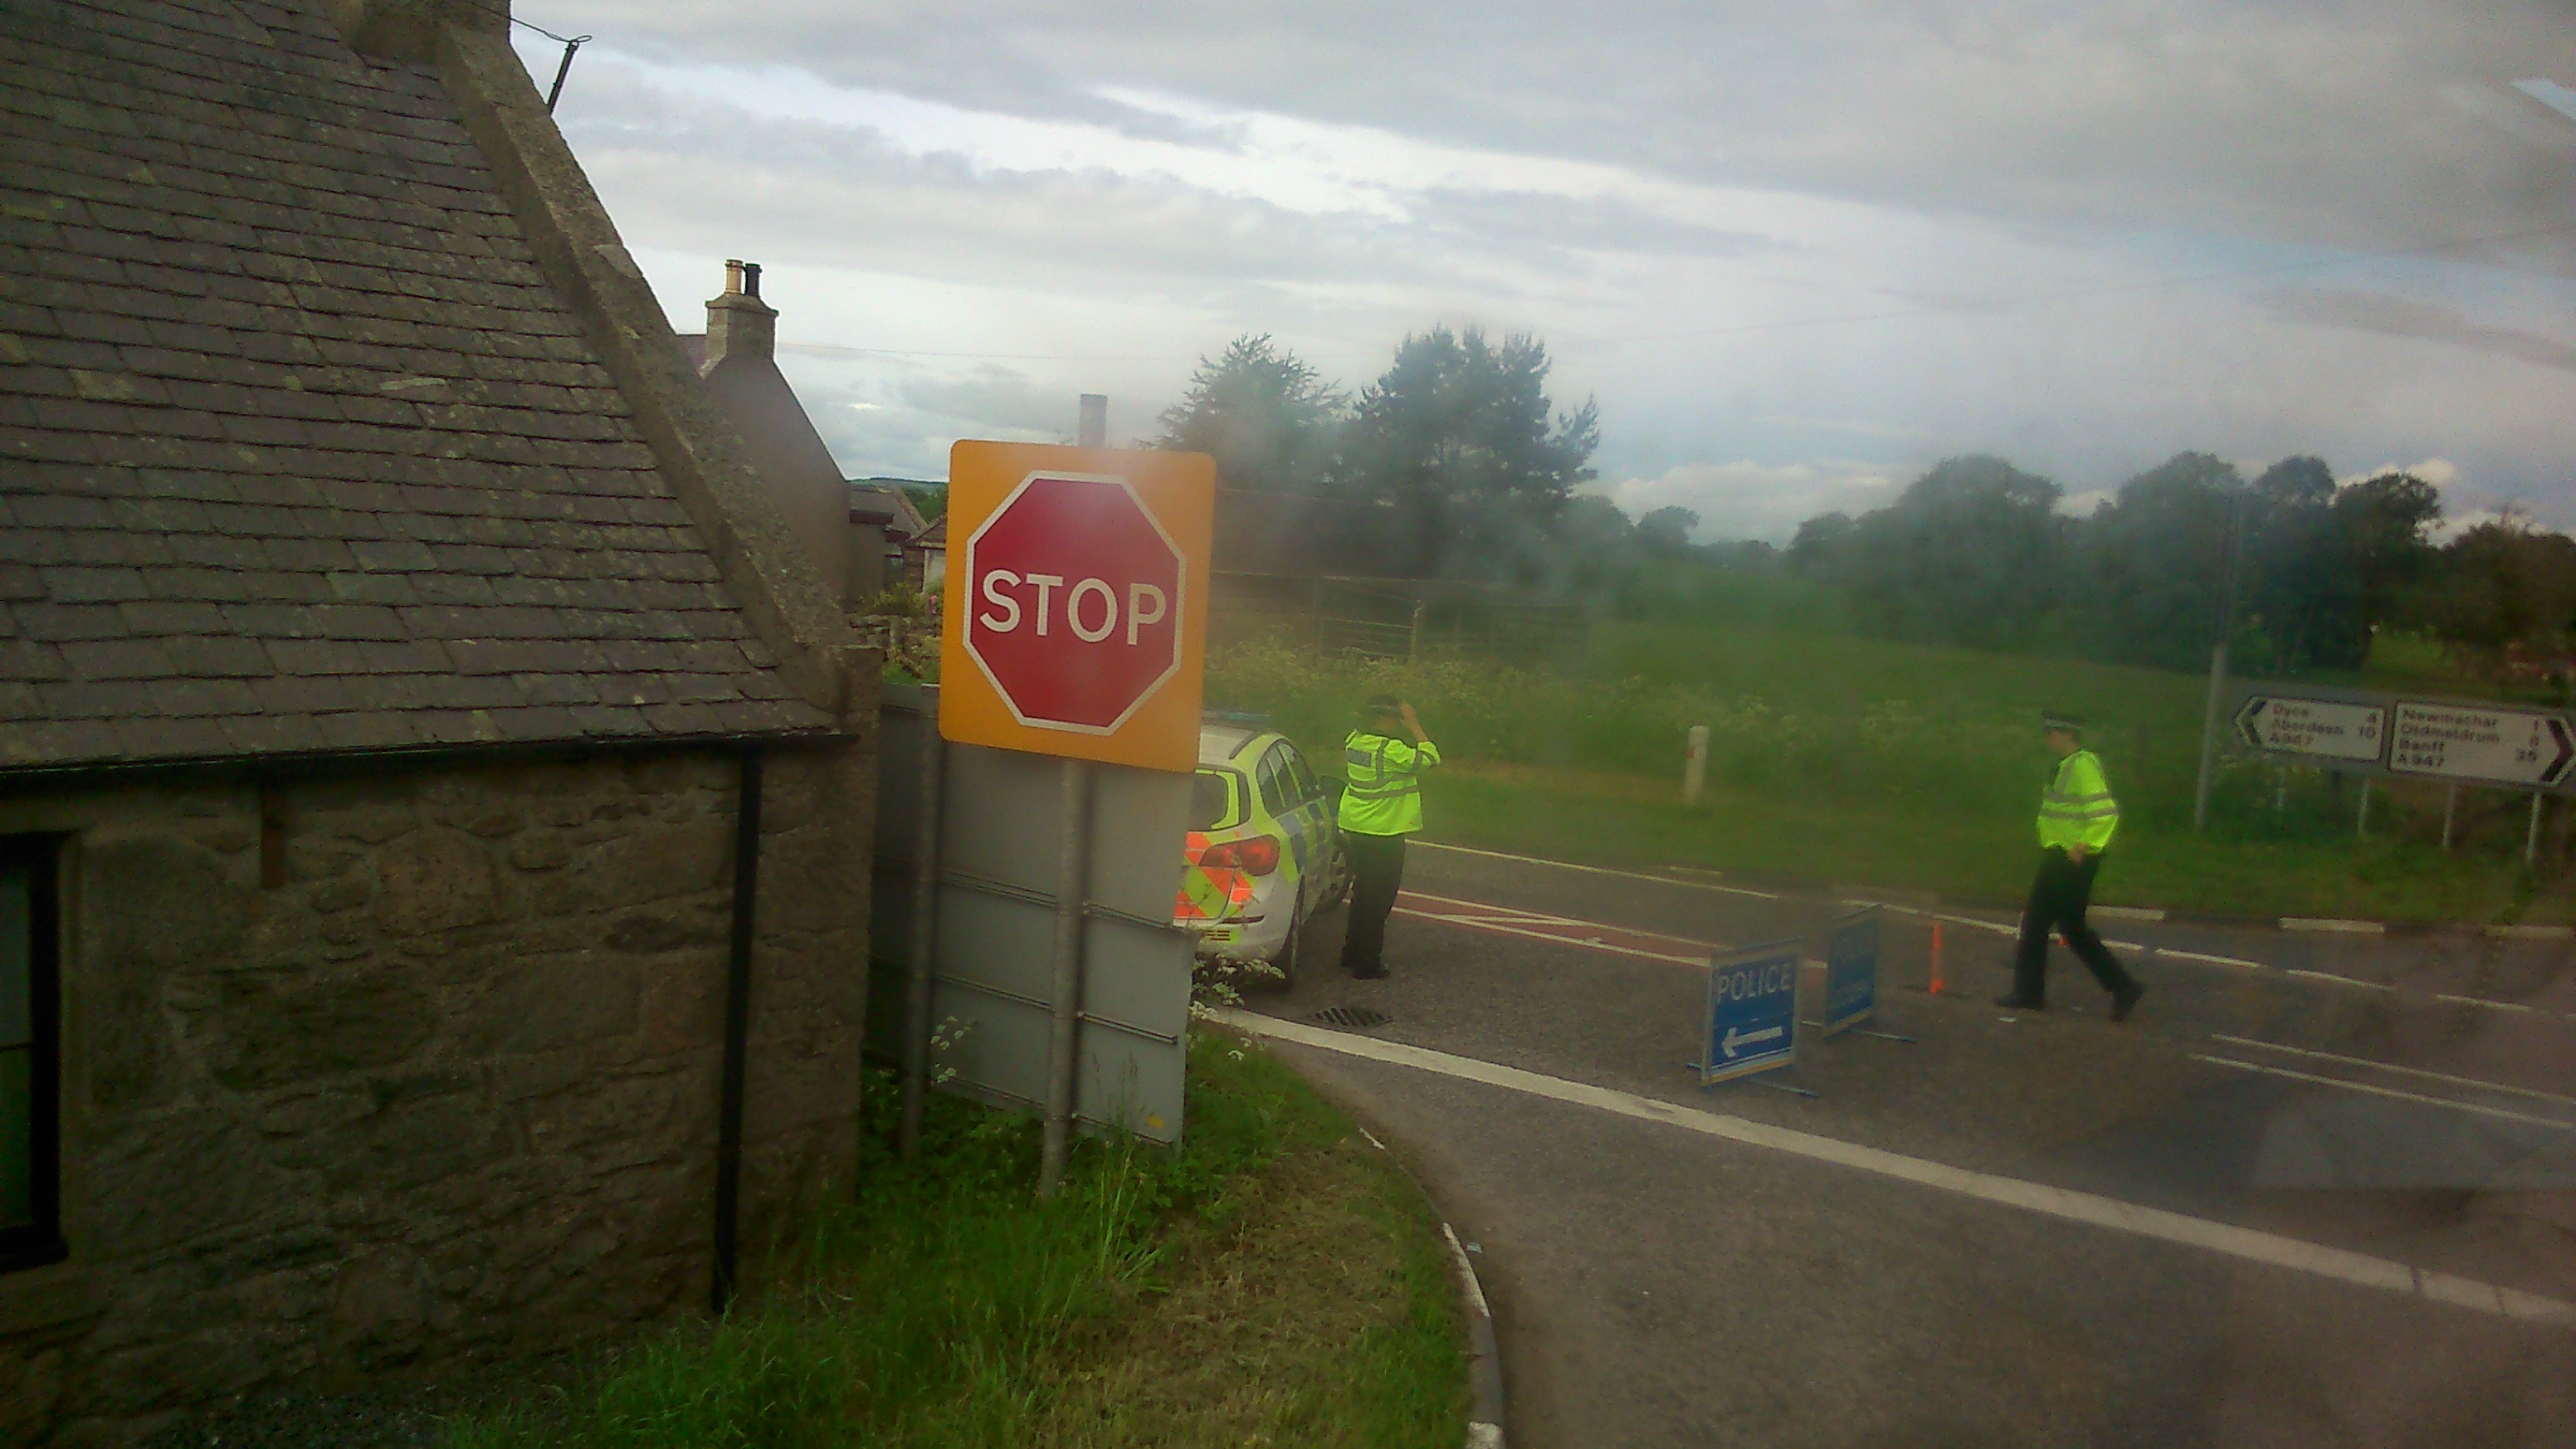 Police direct traffic following the crash